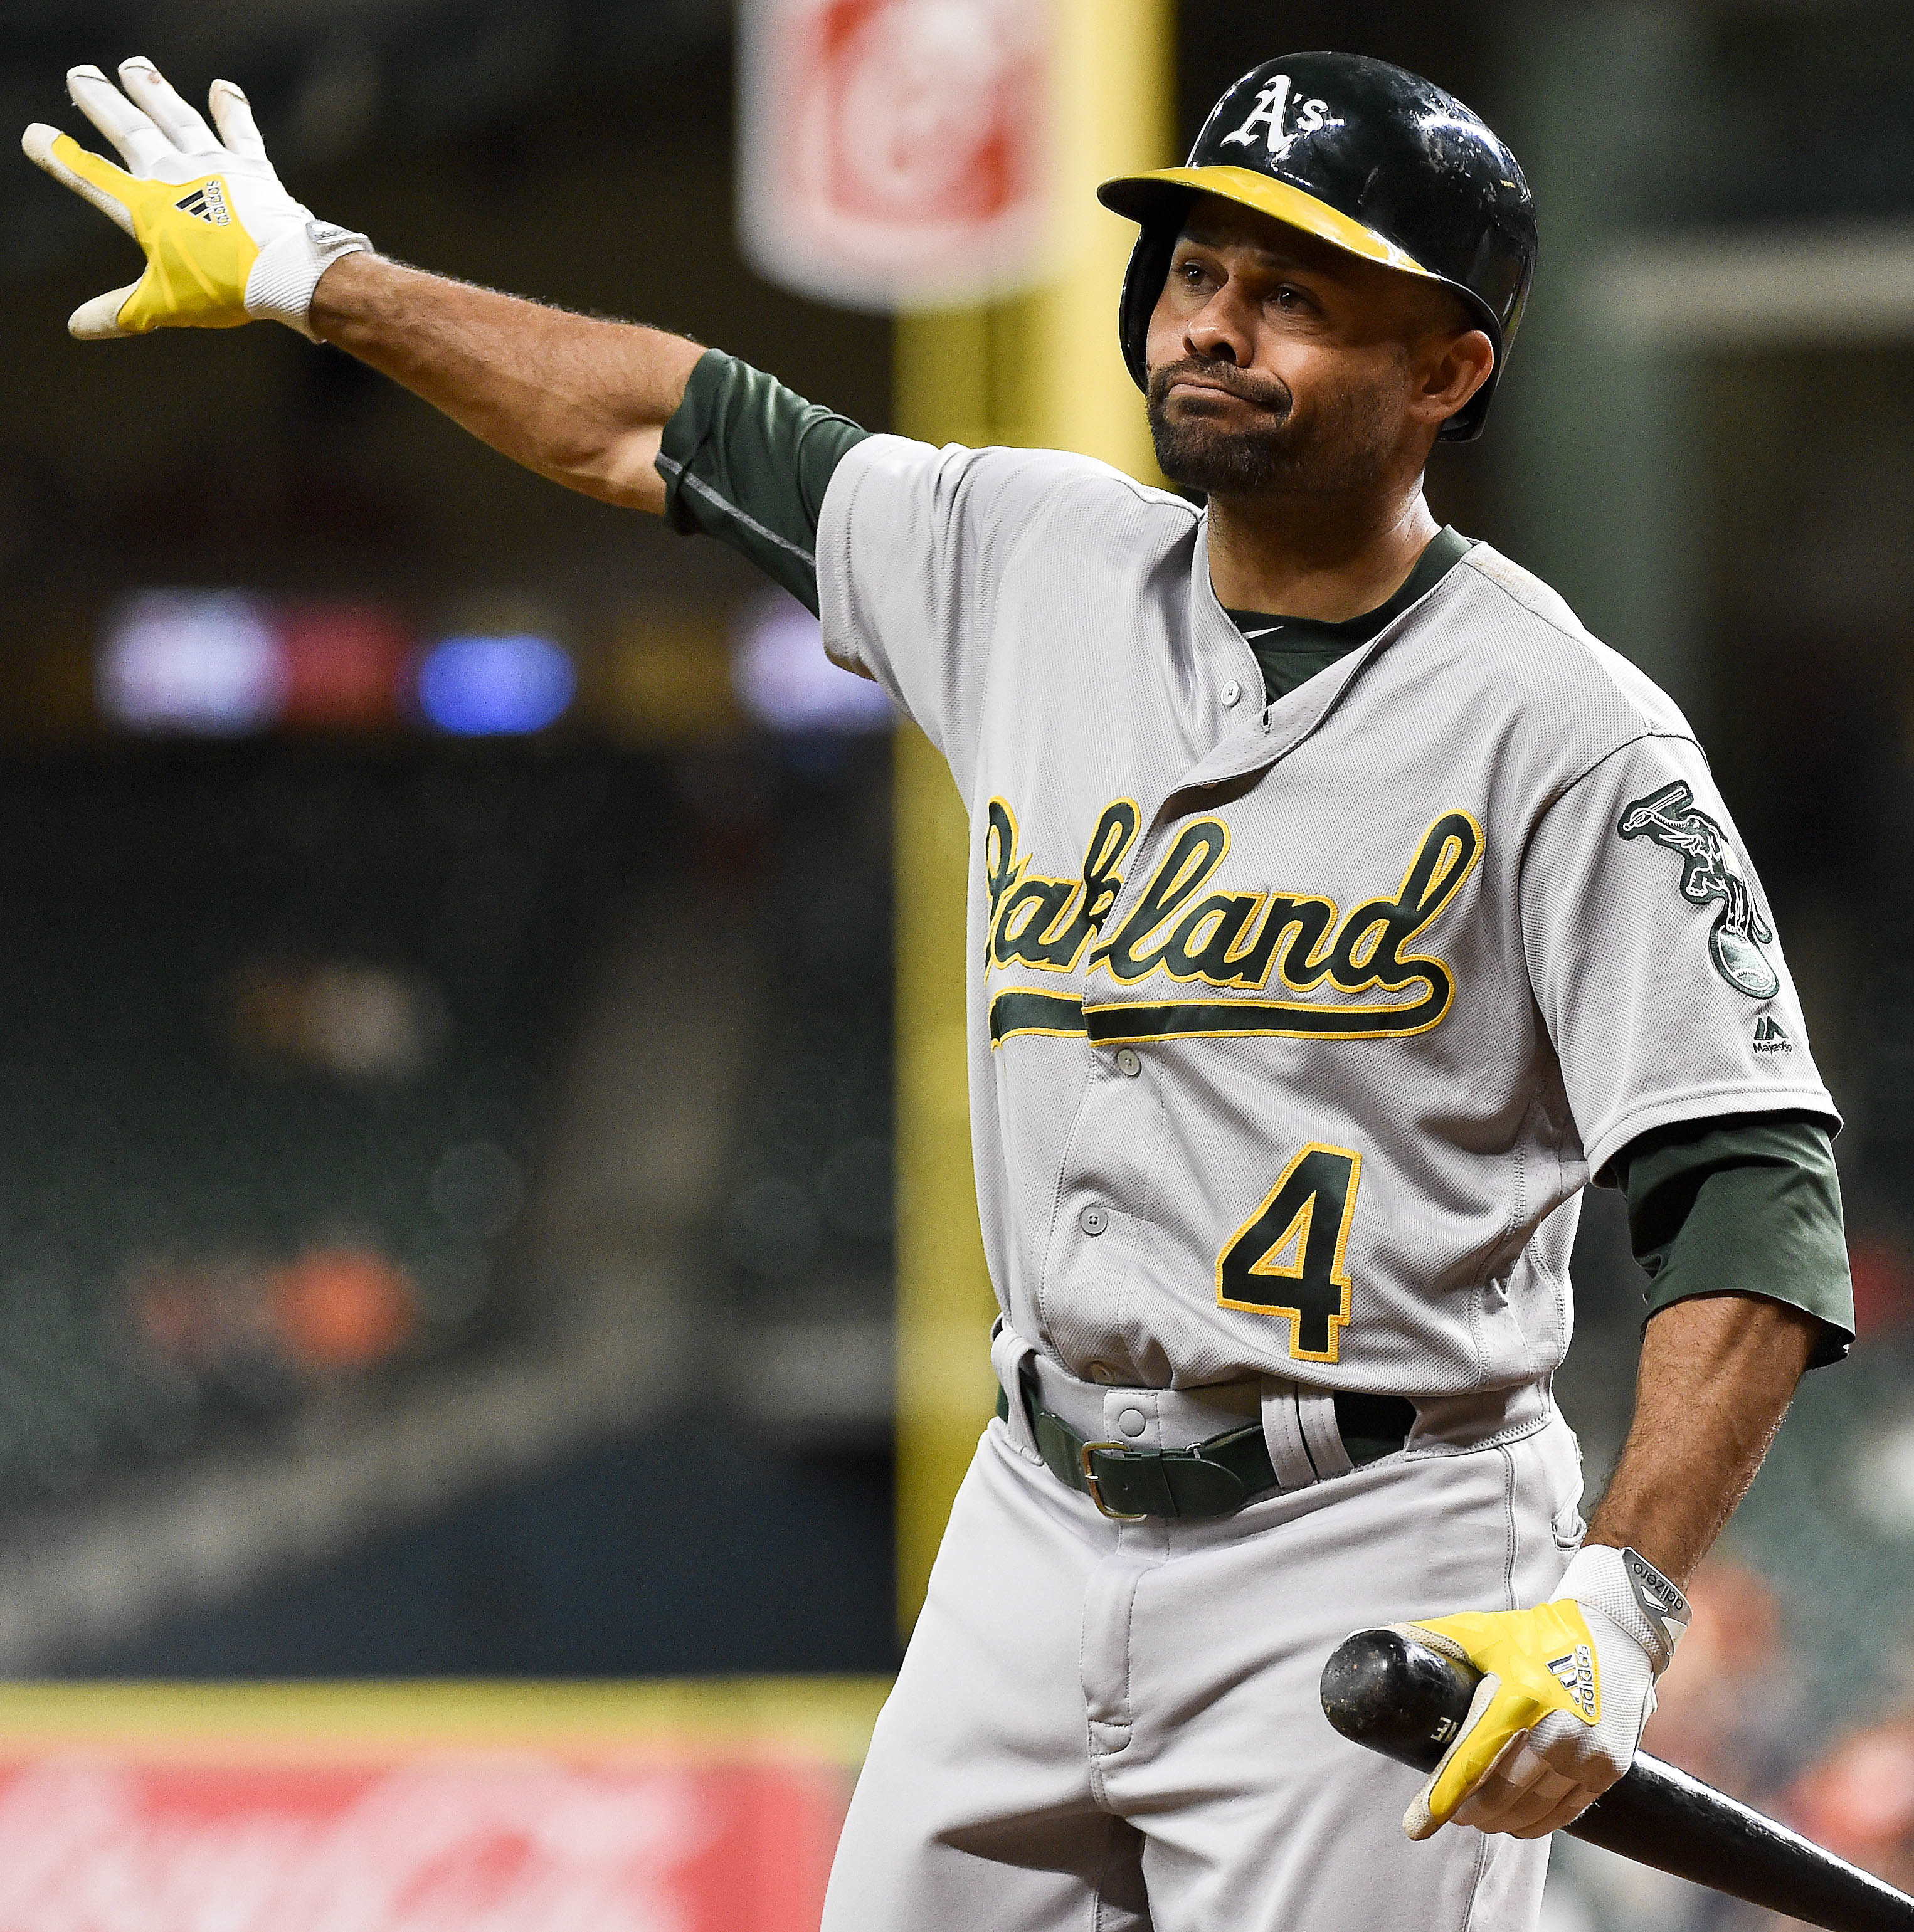 Oakland Athletics' Coco Crisp reacts after being called out on strikes in the first inning of a baseball game against the Houston Astros, Monday, Aug. 29, 2016, in Houston. (AP Photo/Eric Christian Smith)